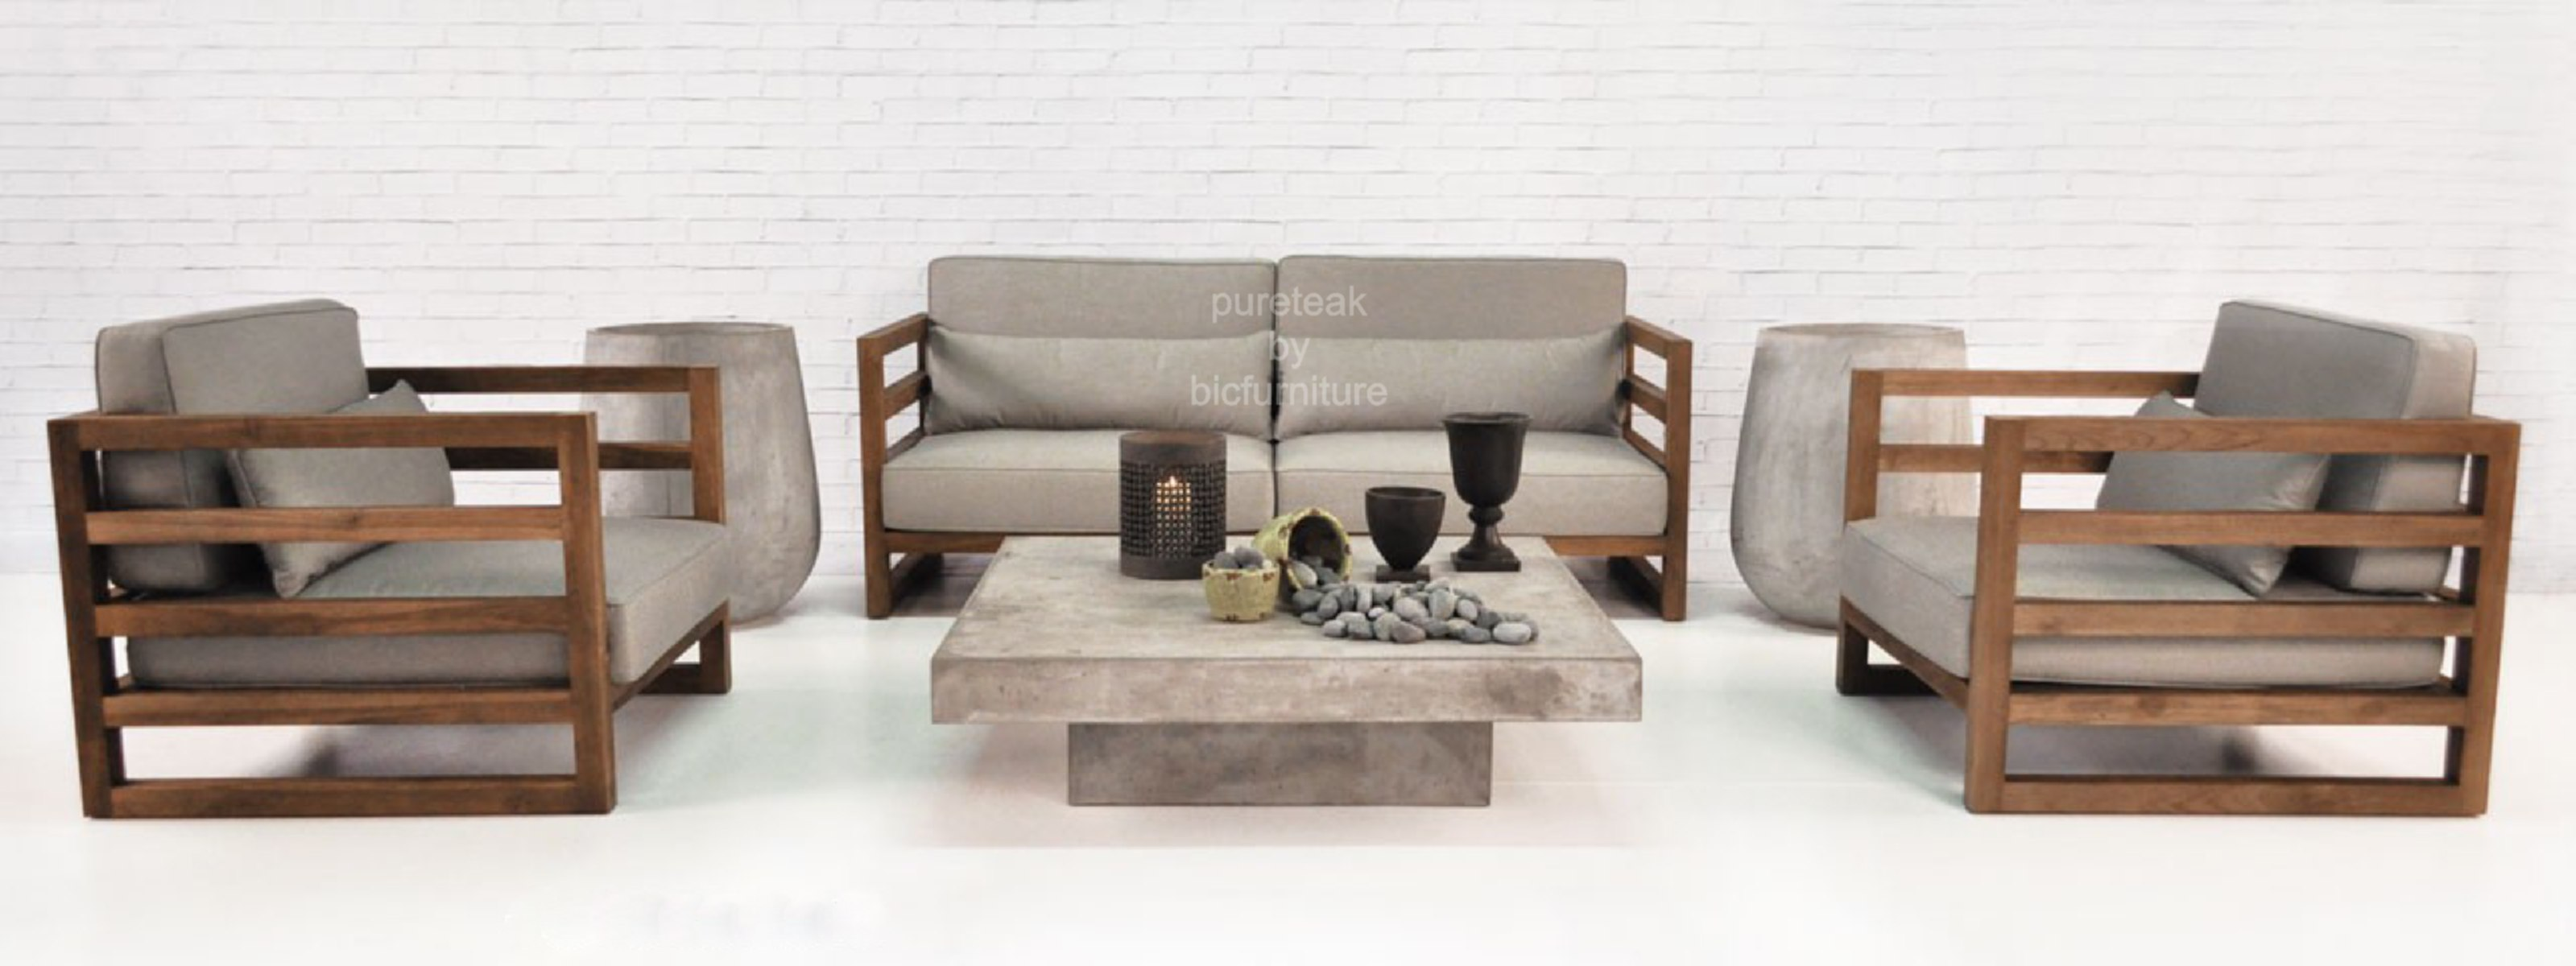 Buy Sleek Sofa that is suitable for your home in Mumbai